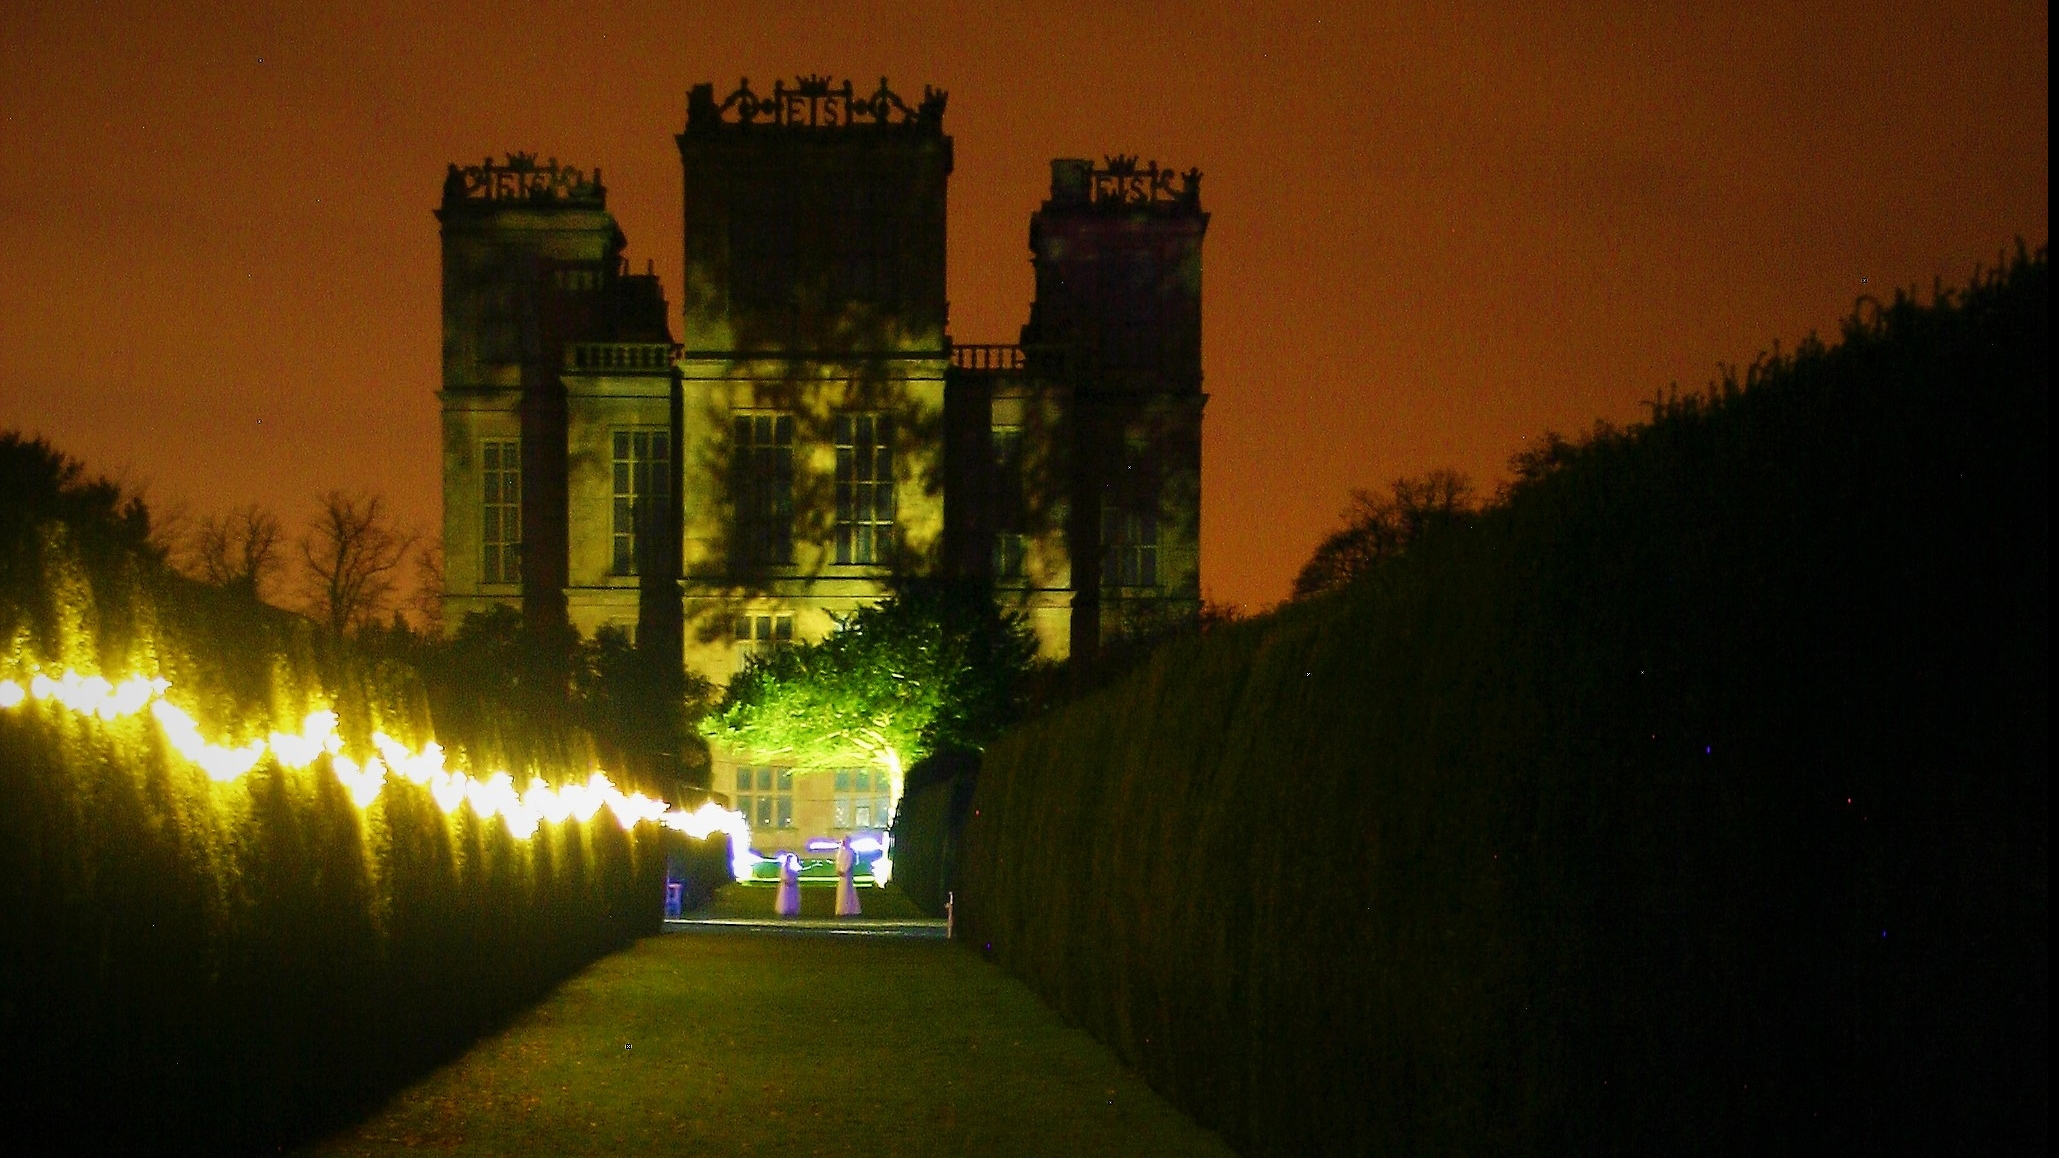 Lighting and event management in Nottinghamshire by EES Showhire National Trust Property